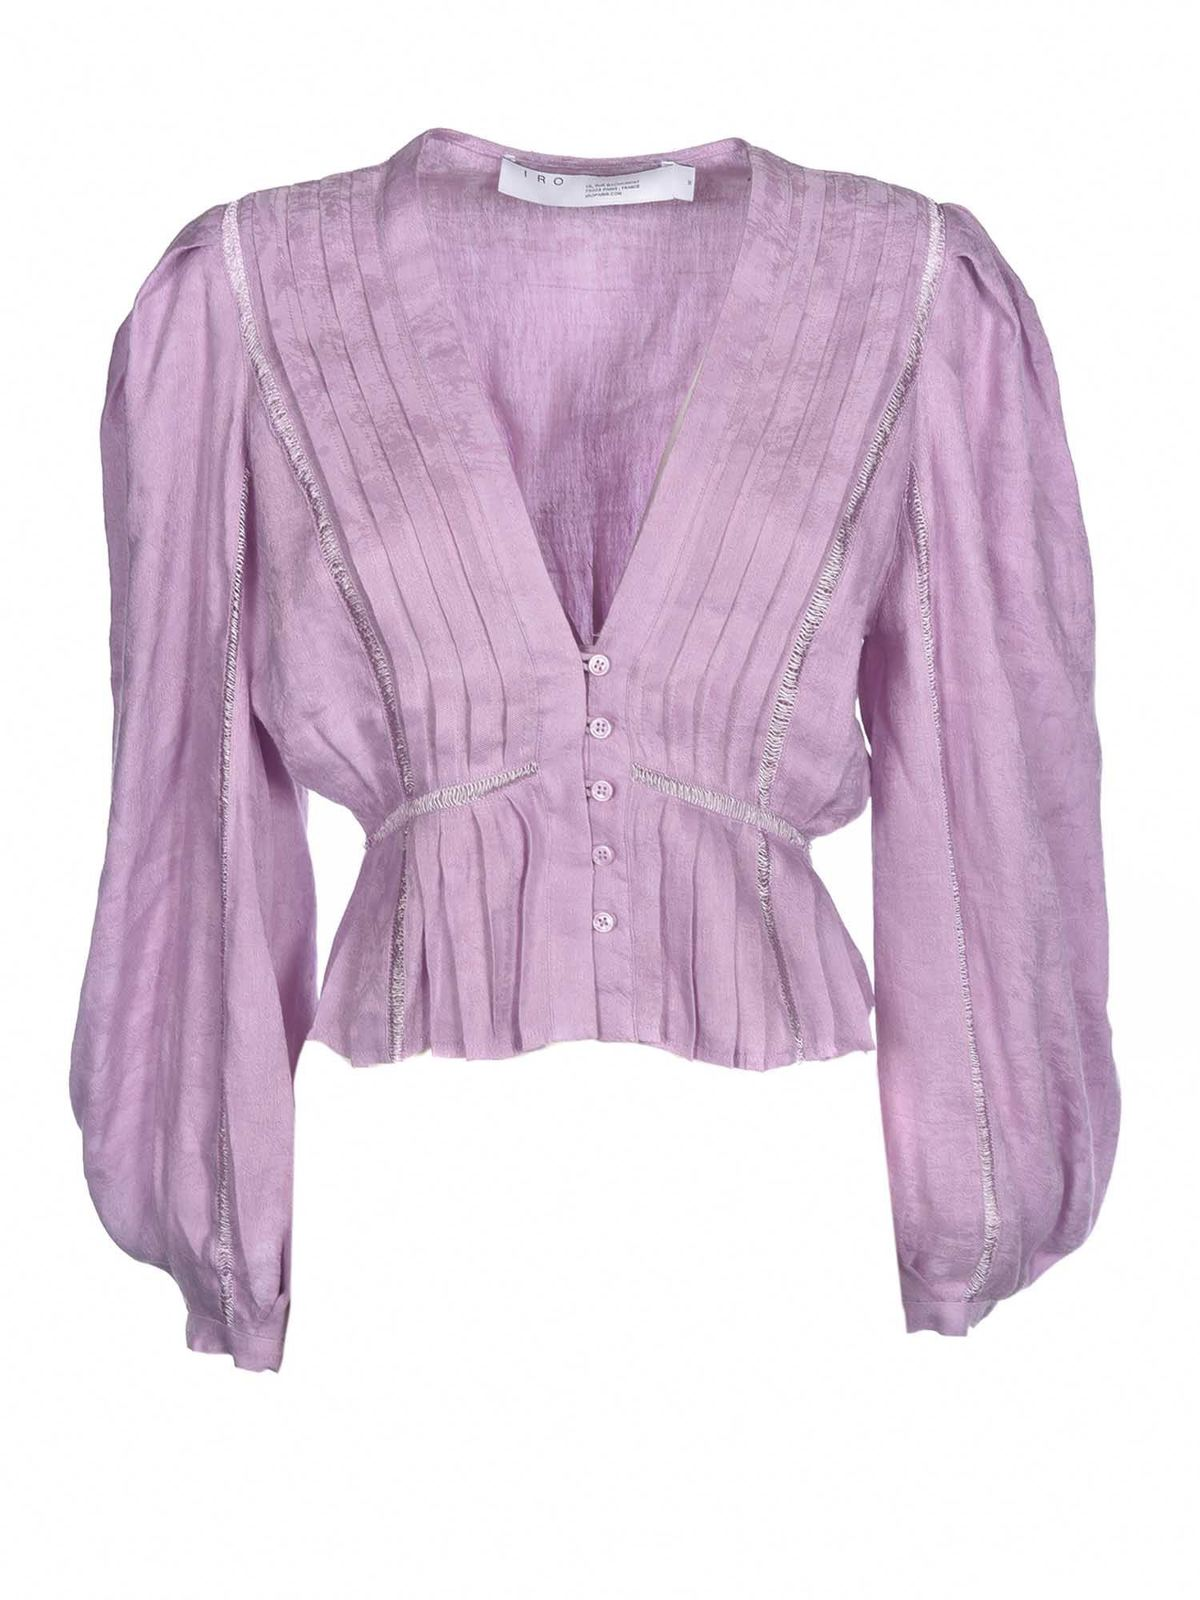 Iro Linens CHIRA SHIRT IN LIGHT PURPLE